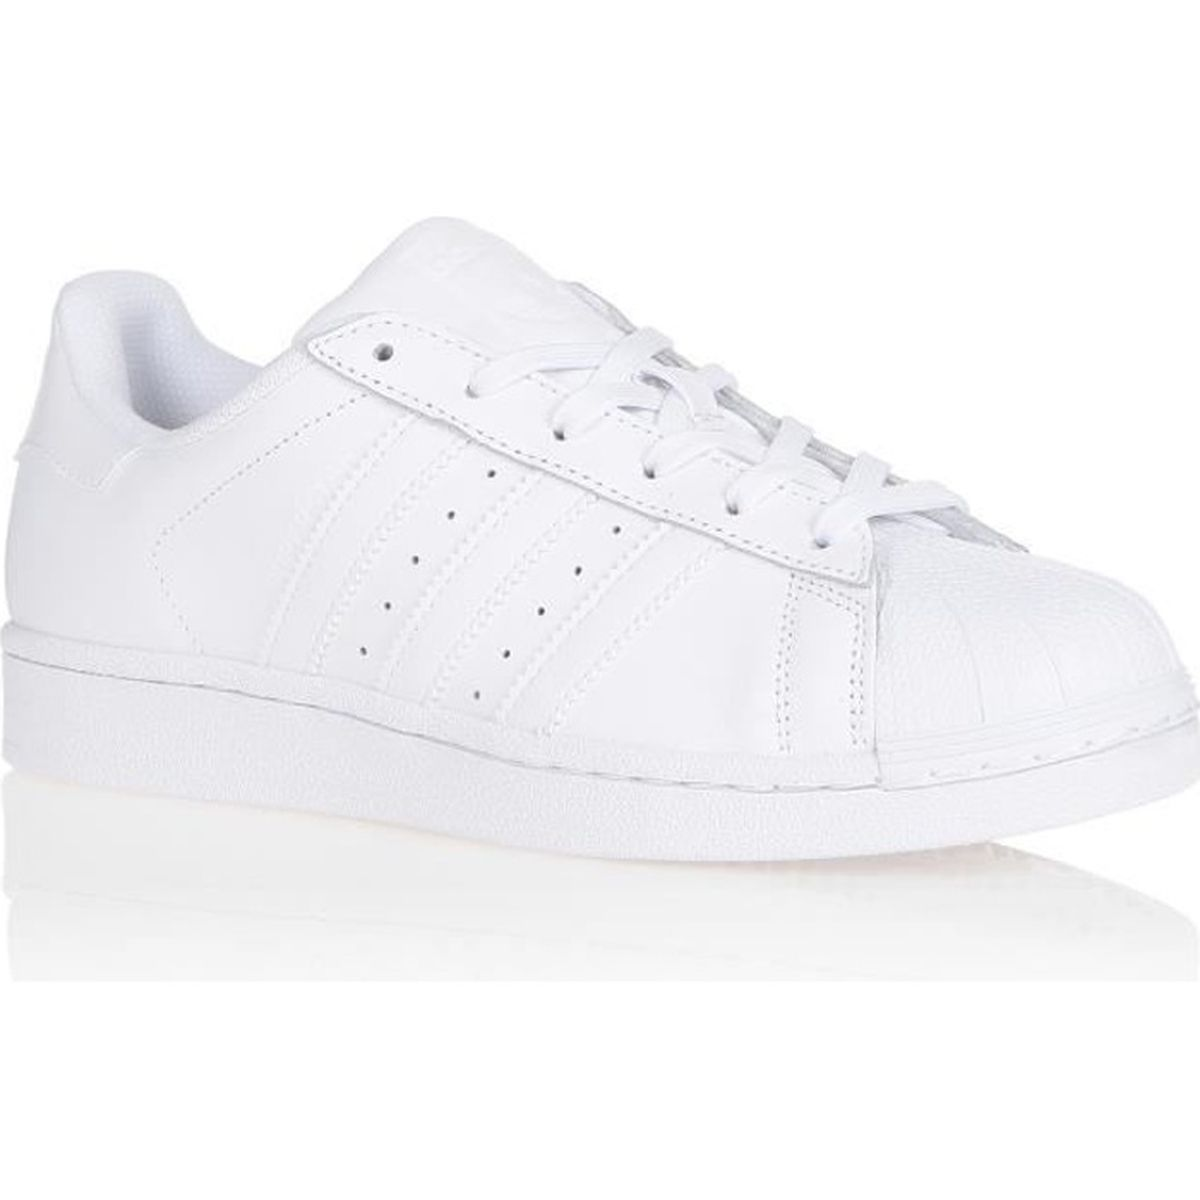 adidas superstar baskets blanc homme